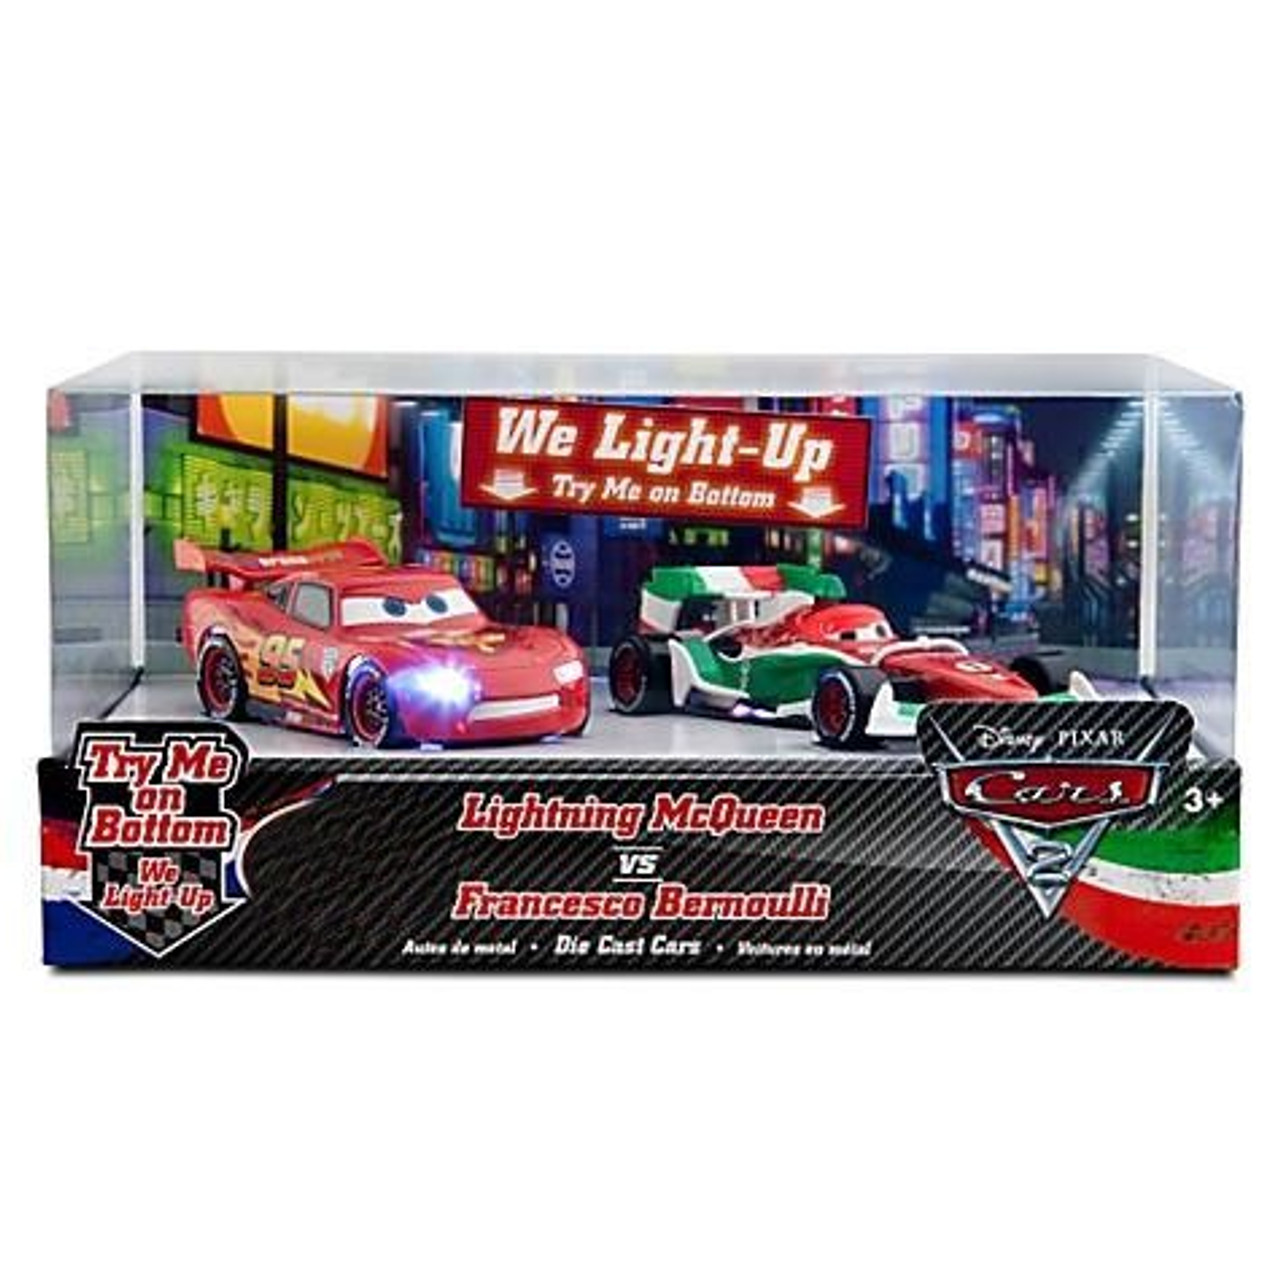 Disney Pixar Cars Cars 2 Light Up Lightning McQueen vs Francesco Bernoulli  Exclusive 143 Diecast Car Set - ToyWiz 626d3c7539af